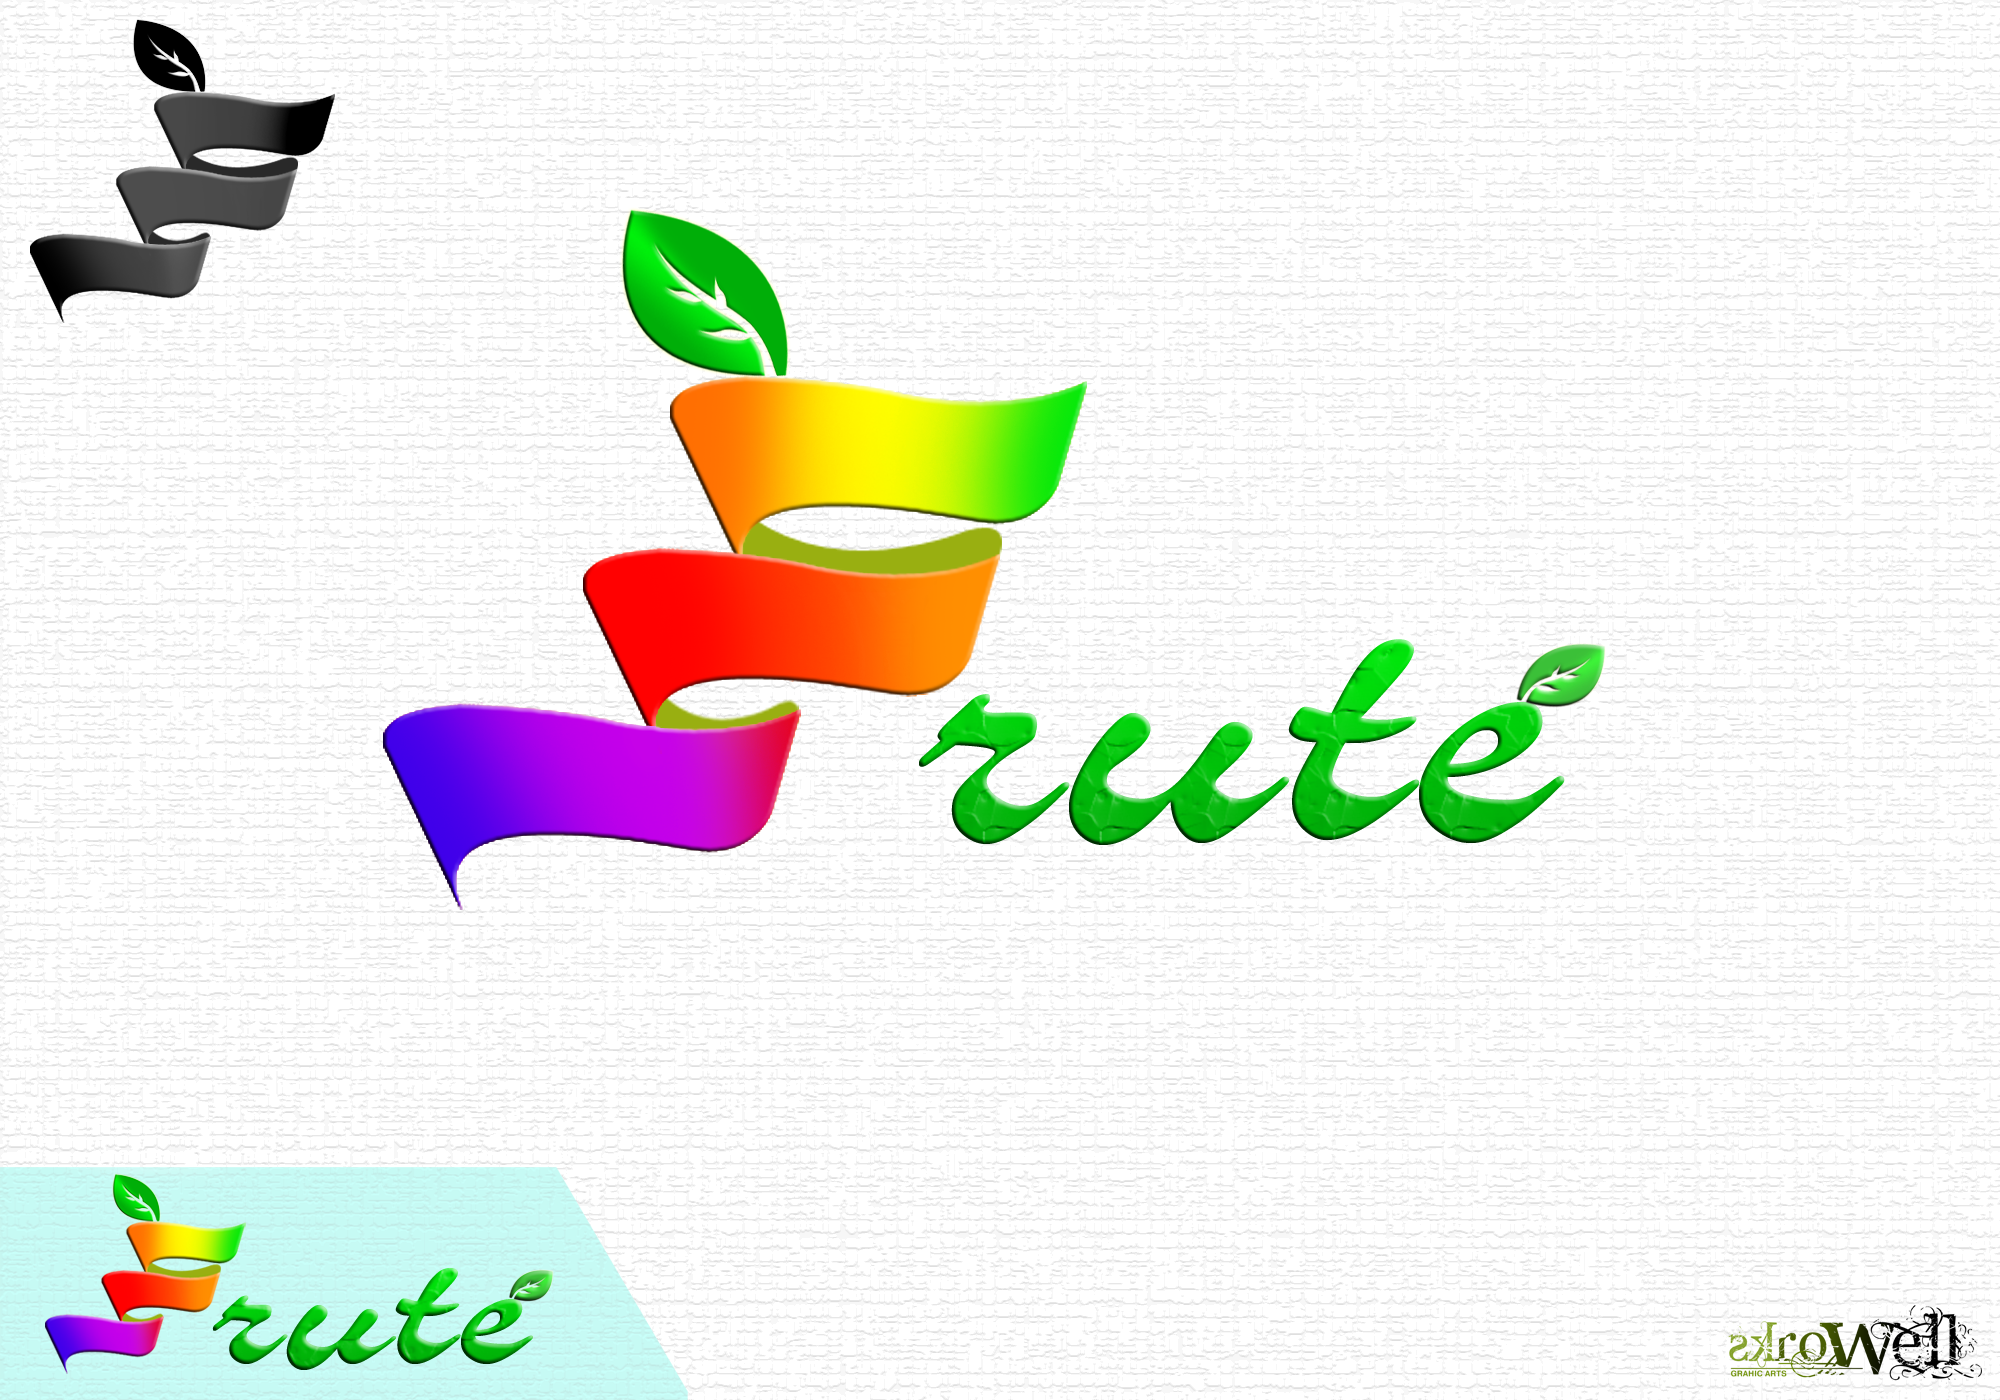 Logo Design by Rowell - Entry No. 87 in the Logo Design Contest Imaginative Logo Design for Fruté.